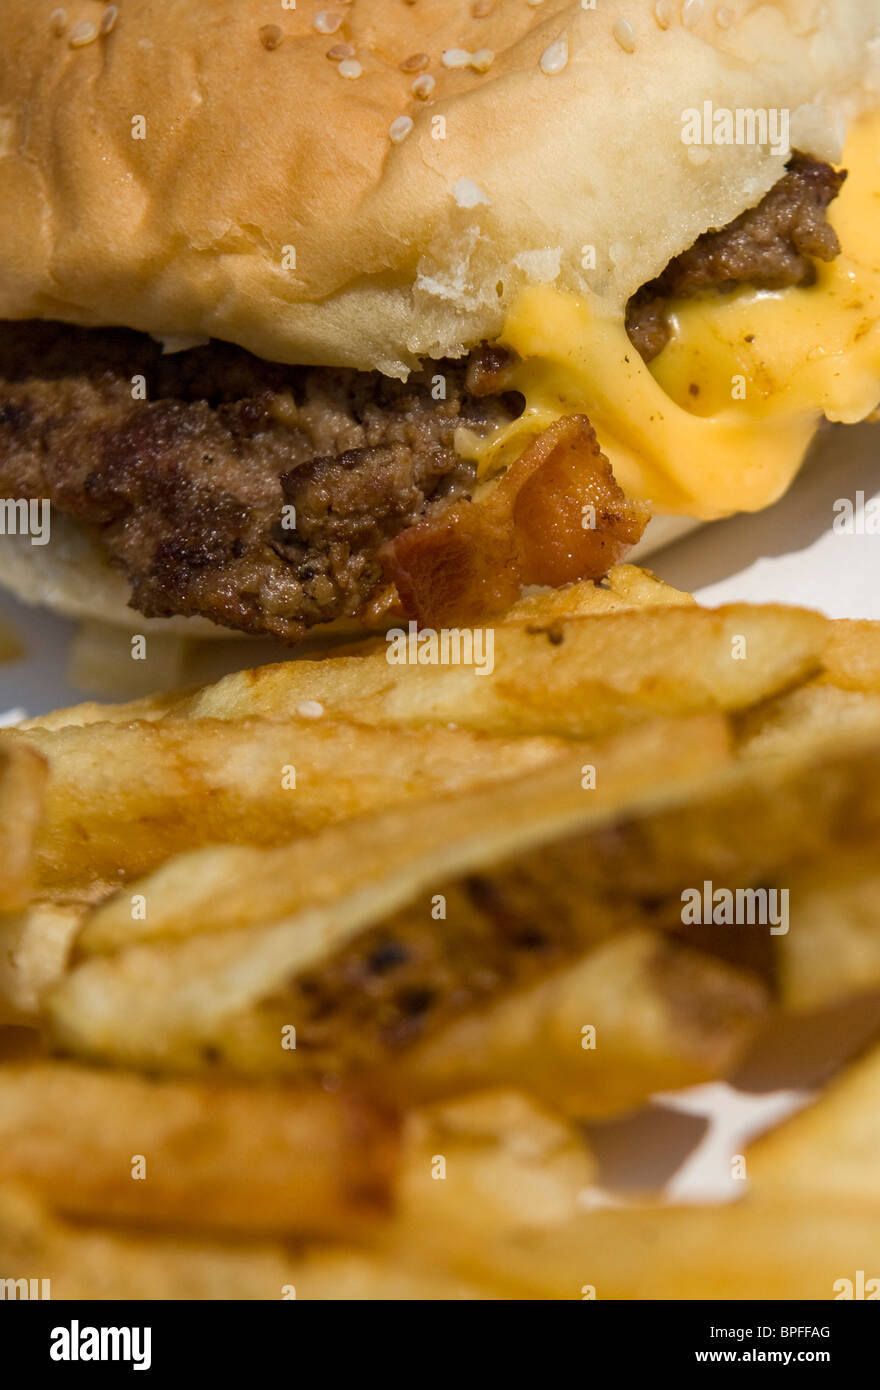 A Five Guys bacon cheeseburger and french fries.  - Stock Image